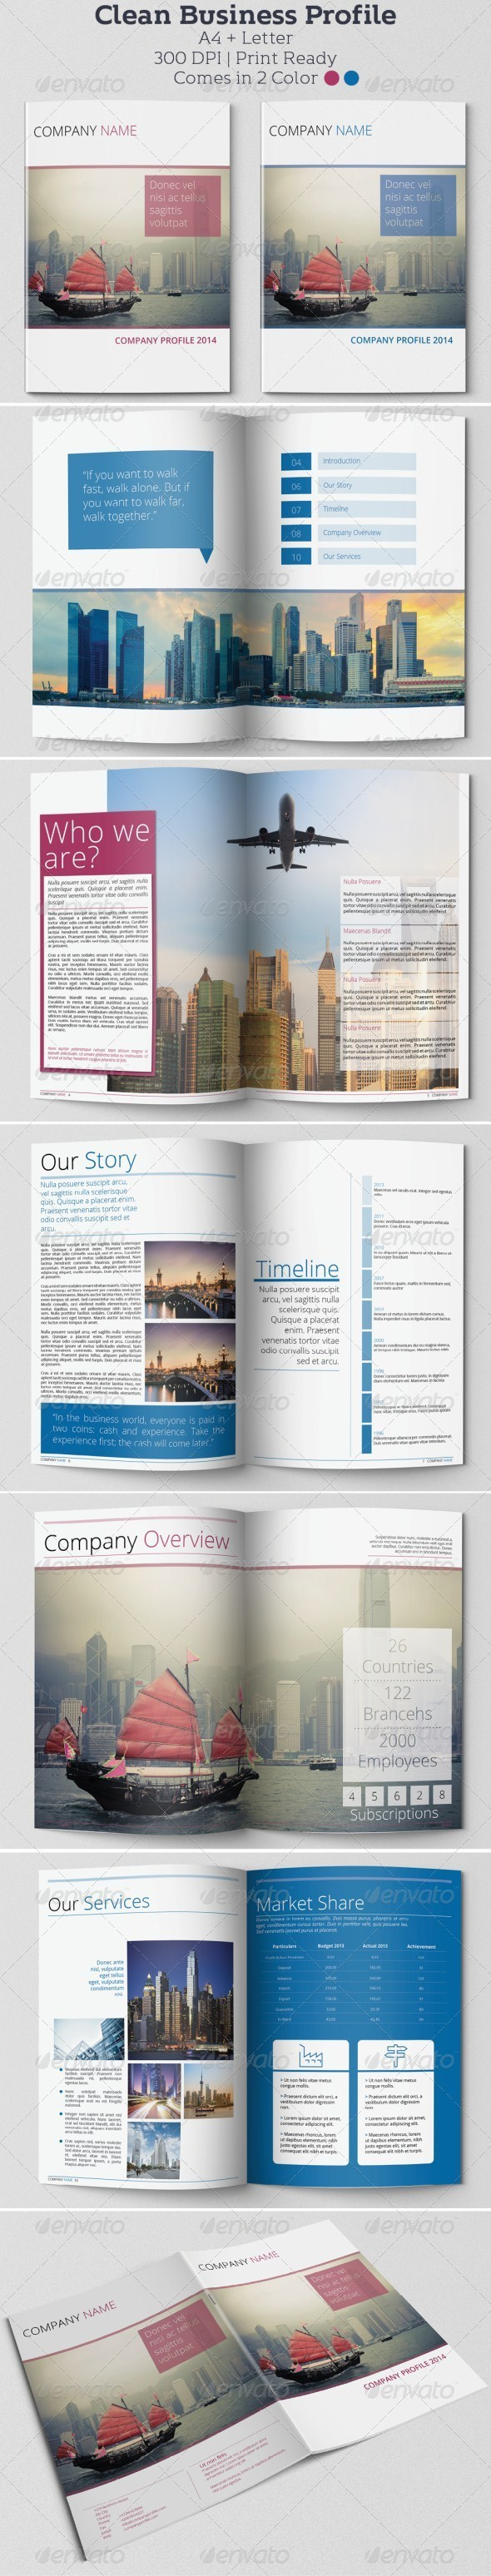 GraphicRiver Clean Business Profile 6744656